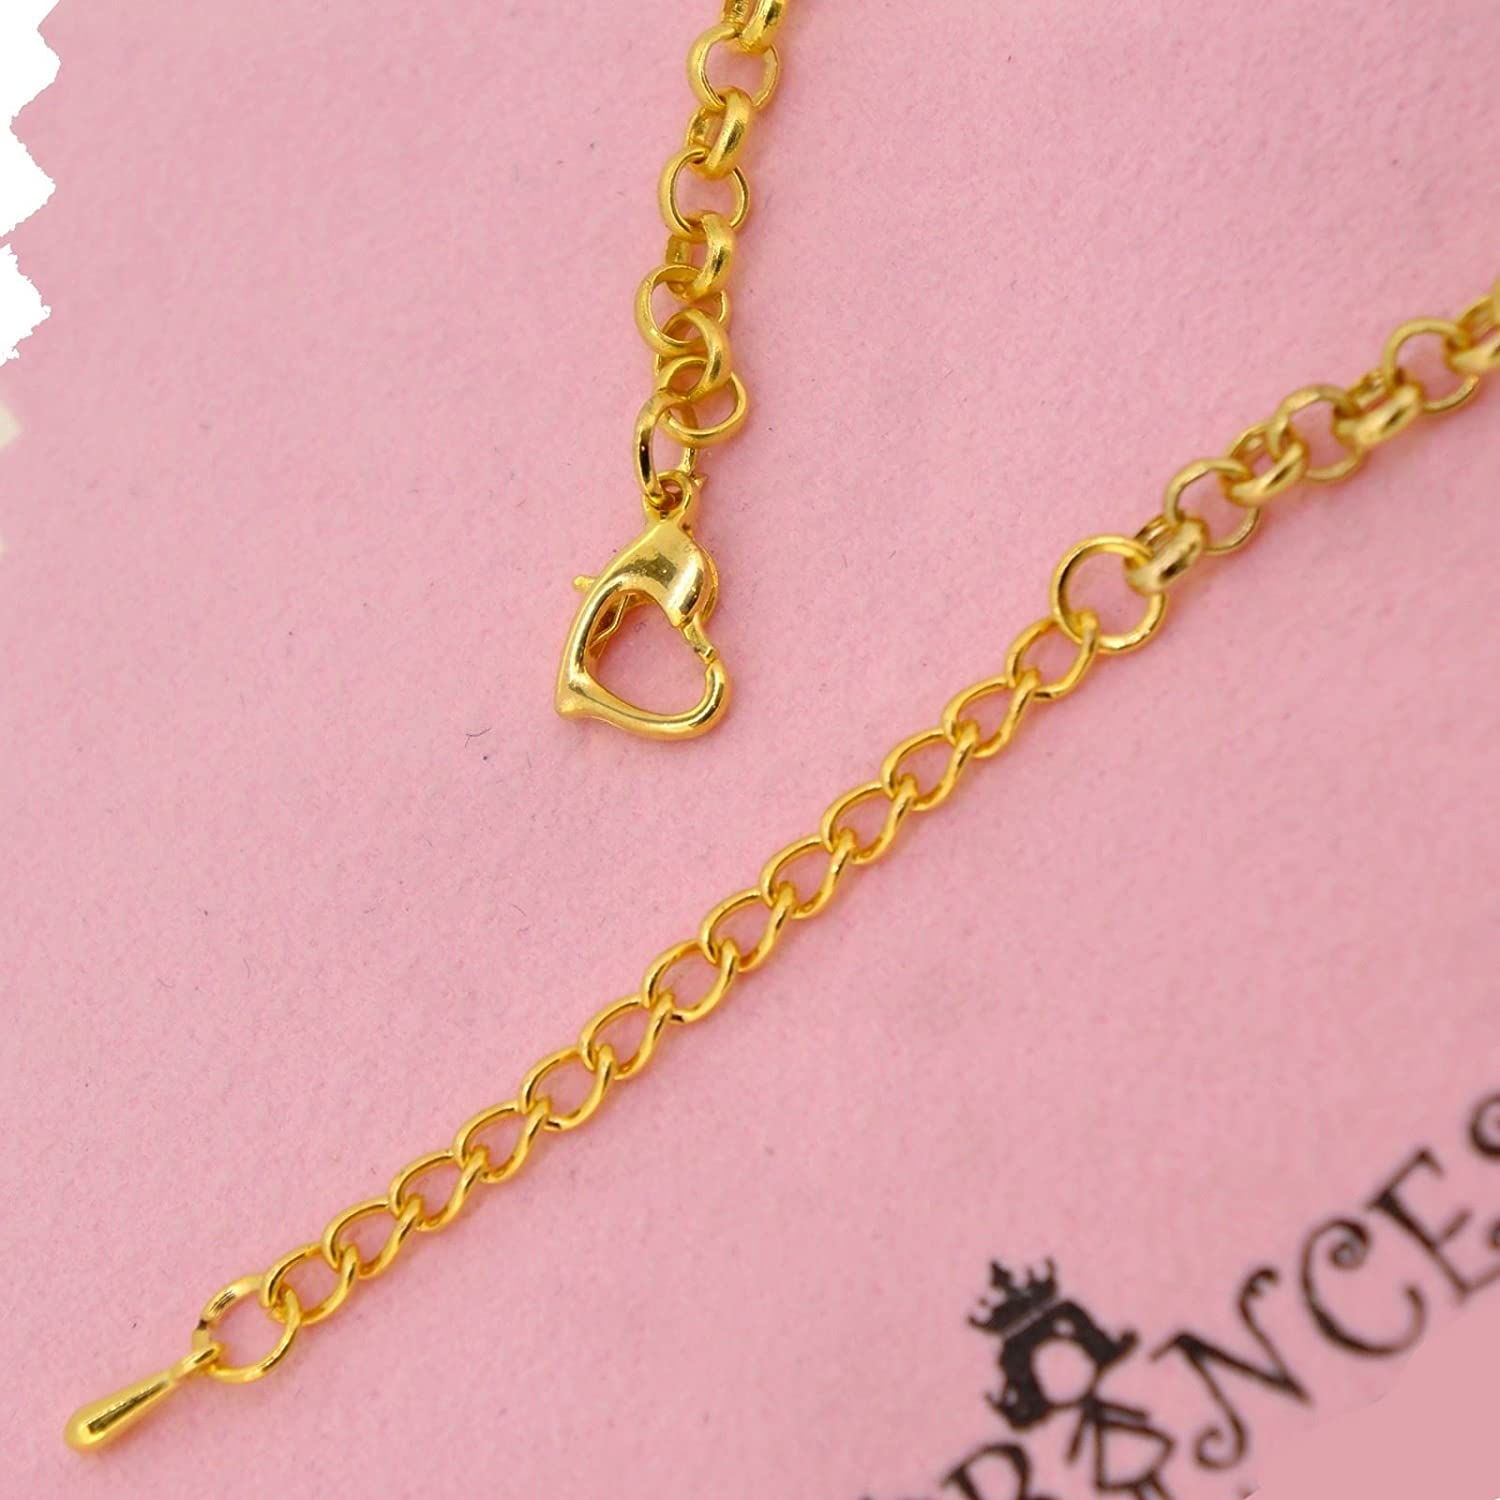 Princess-J Cat Lovers Pink Bow Removable Charms with Golden Bracelet for Teen Girls Women